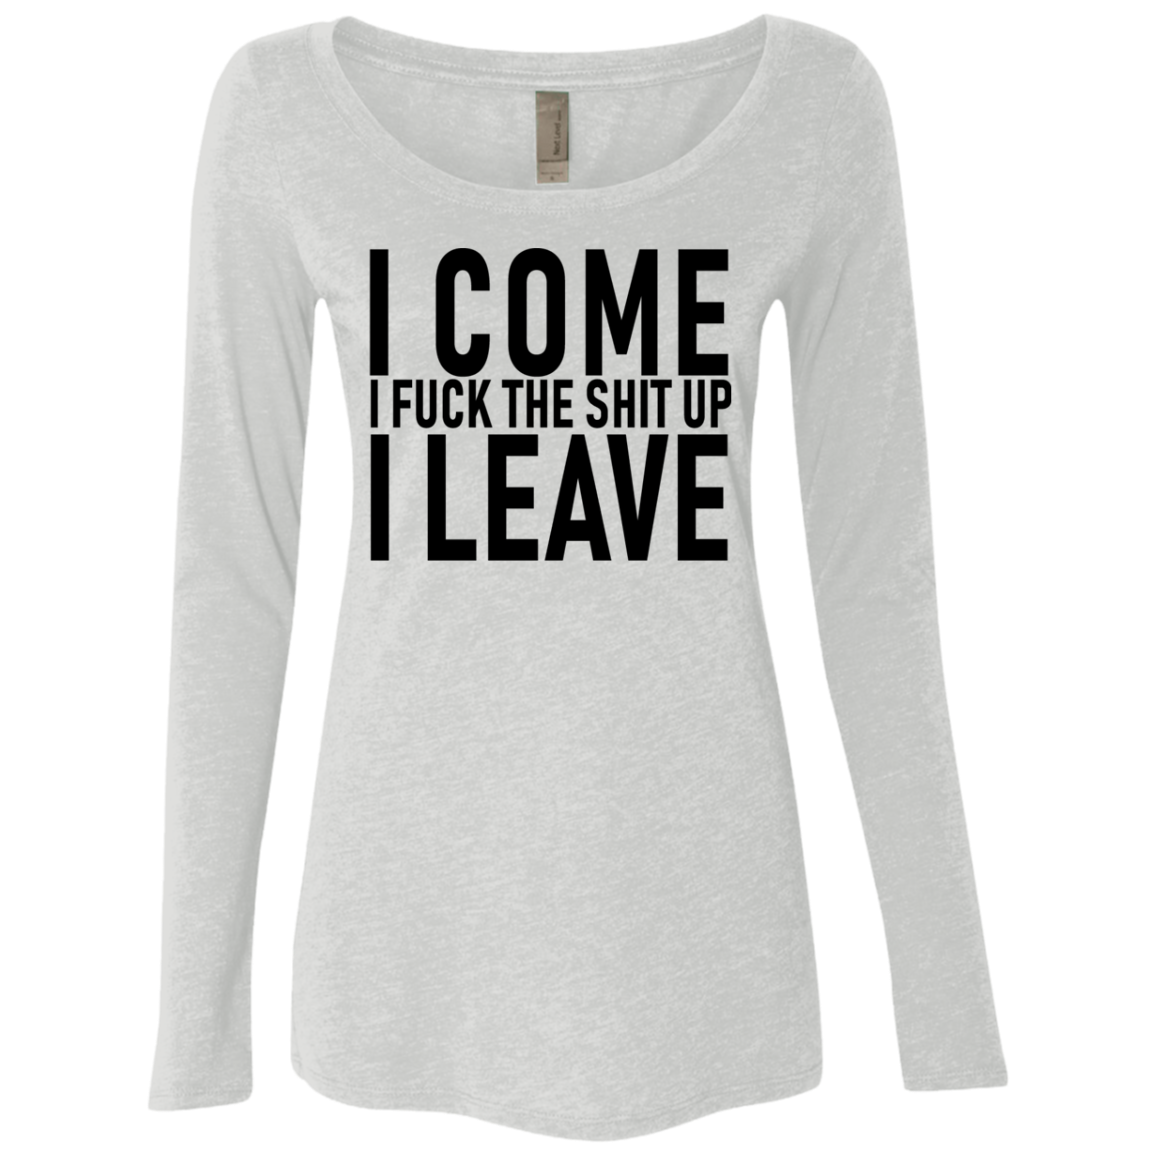 I Come I Fuck The Shit Up I Leave Women's Long Sleeve Tee